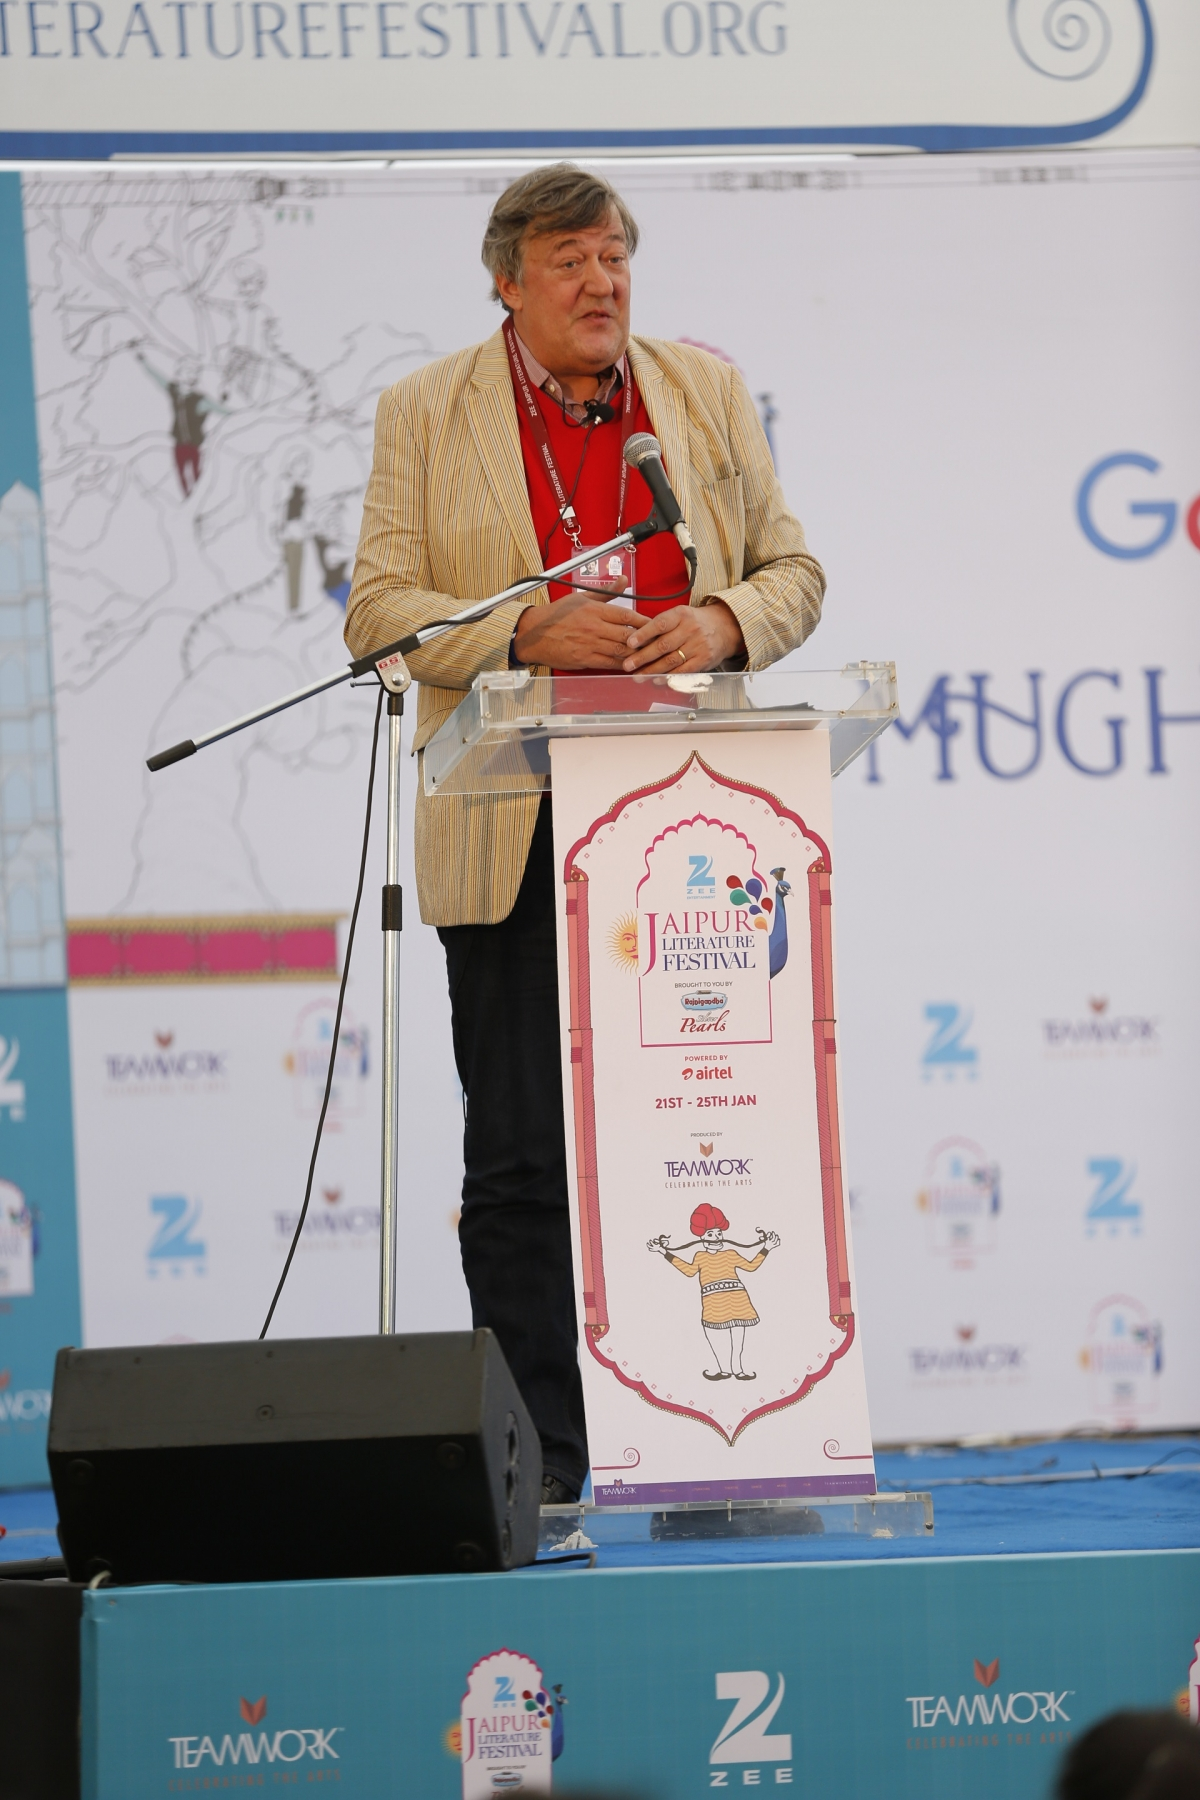 Stephen Fry at Jaipur Literature Festival